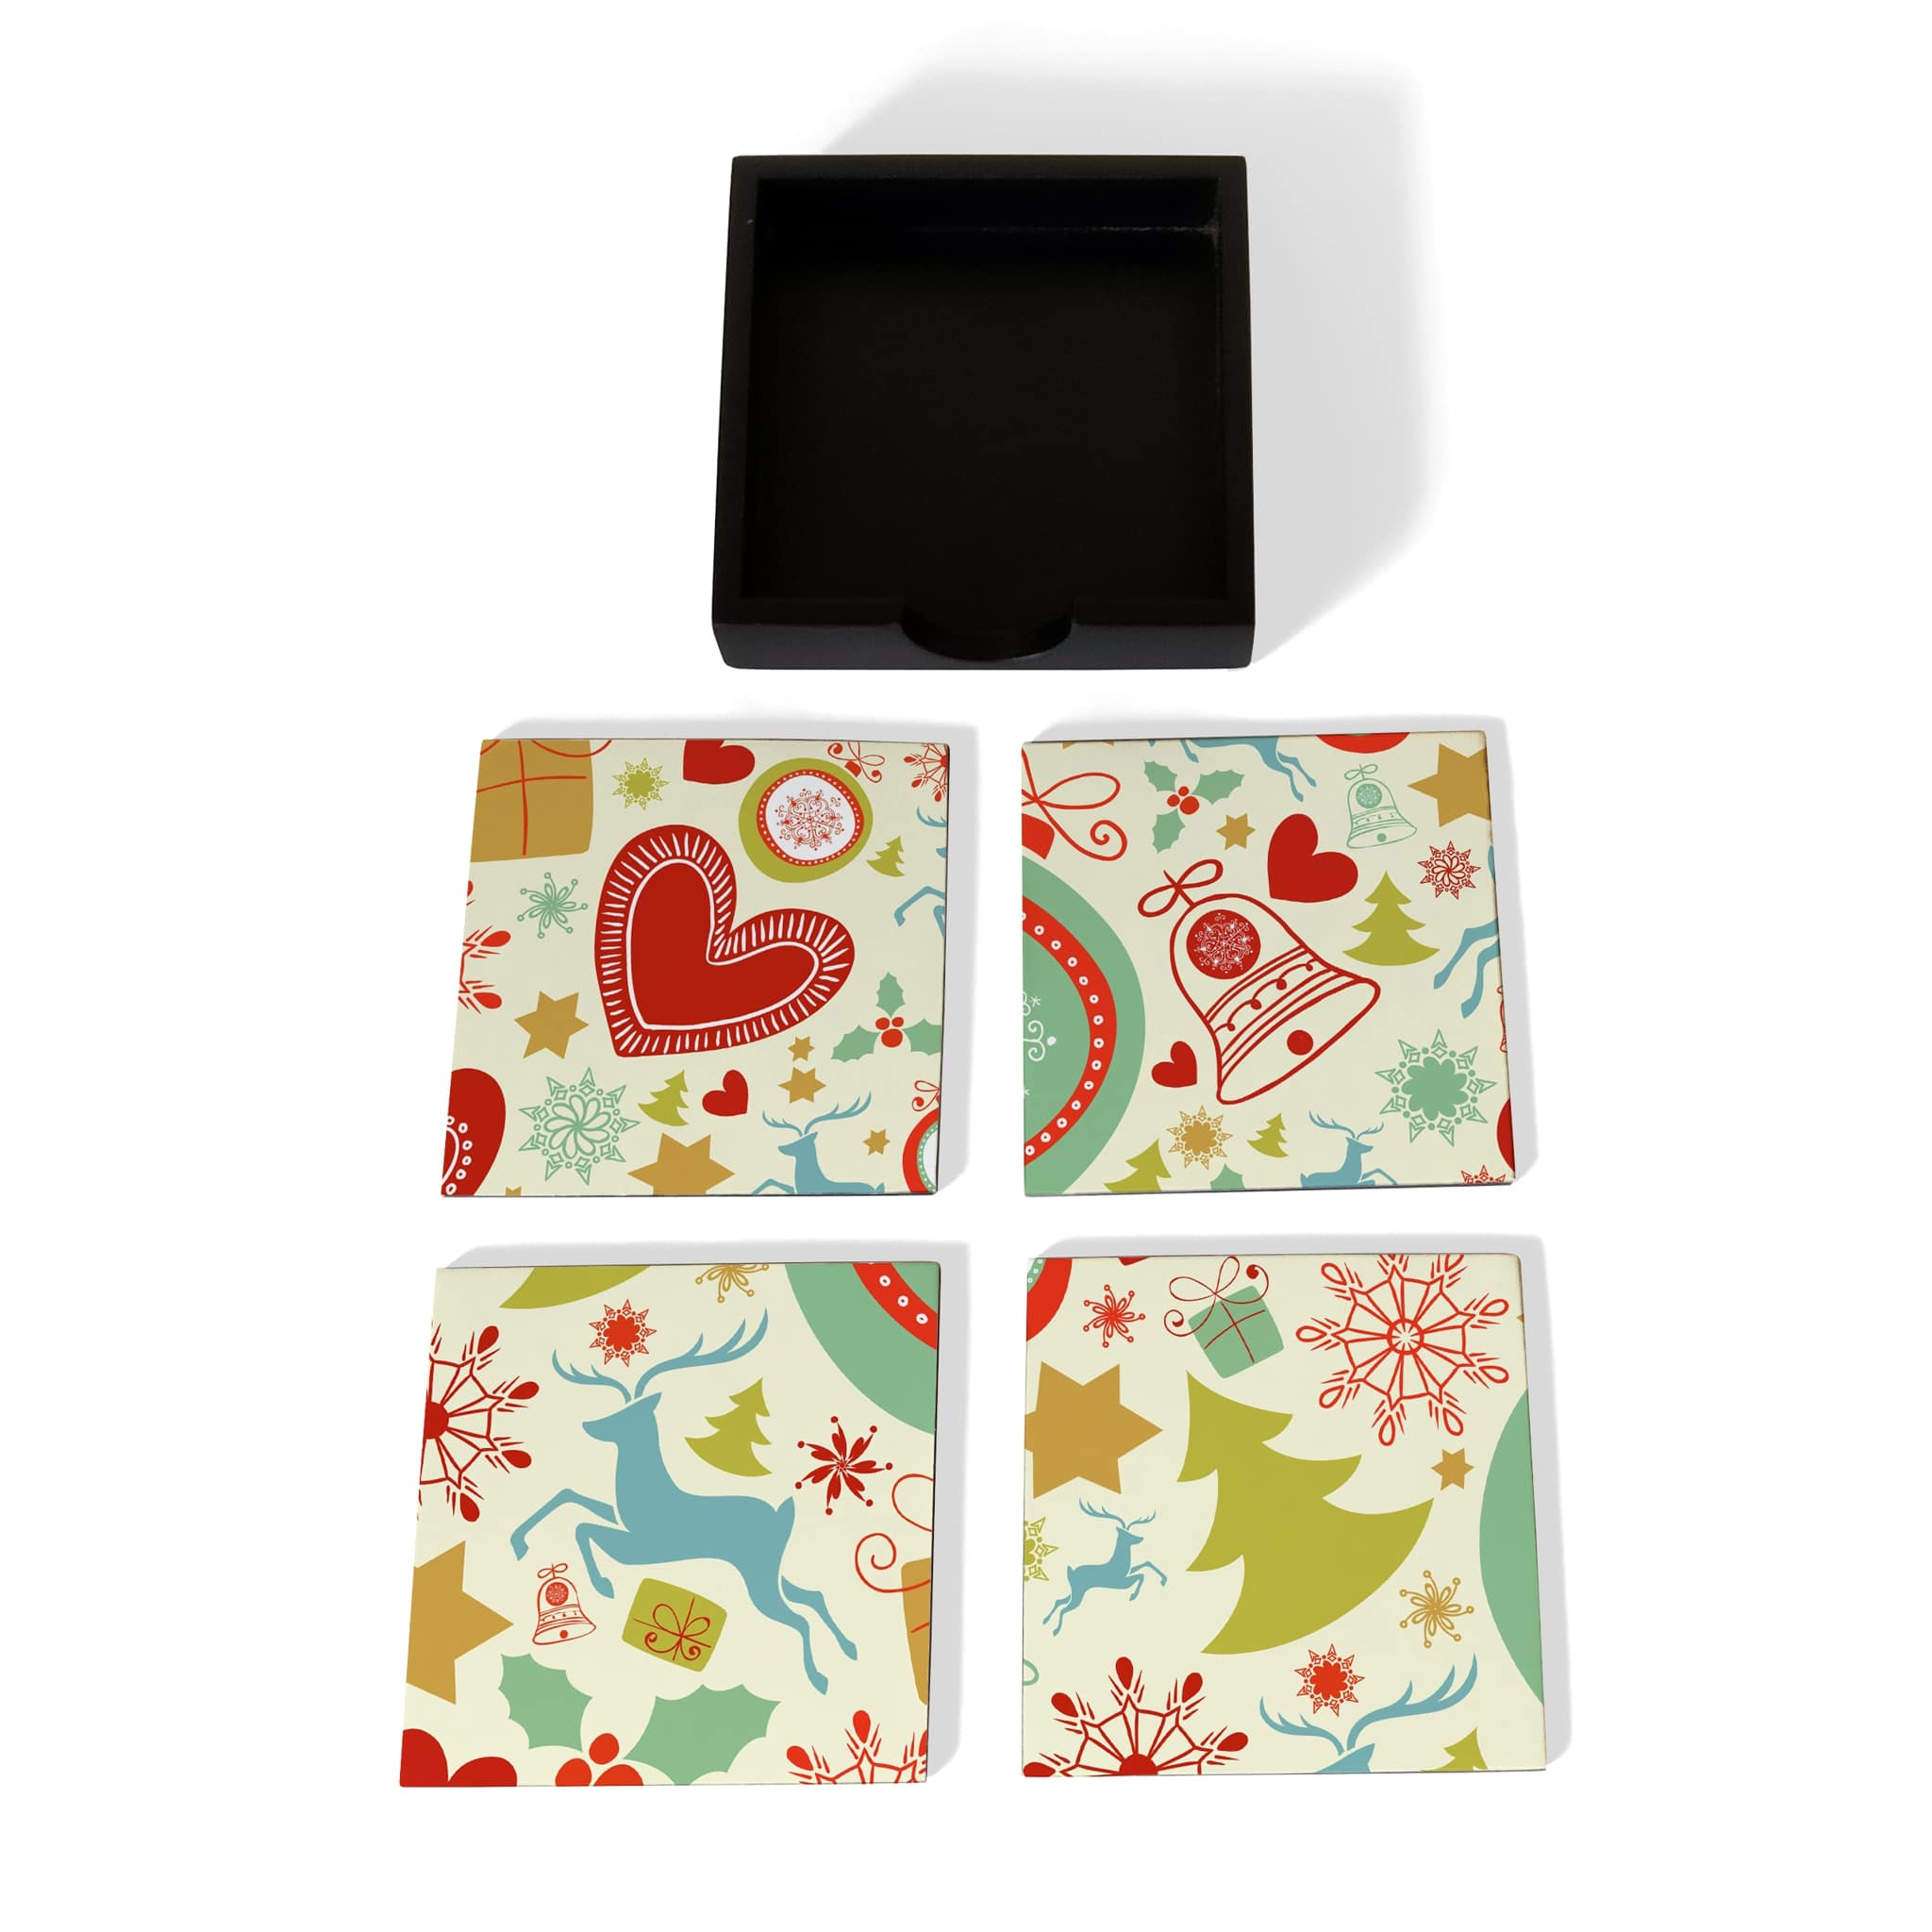 Xmas Allover3 Coaster Set with Box